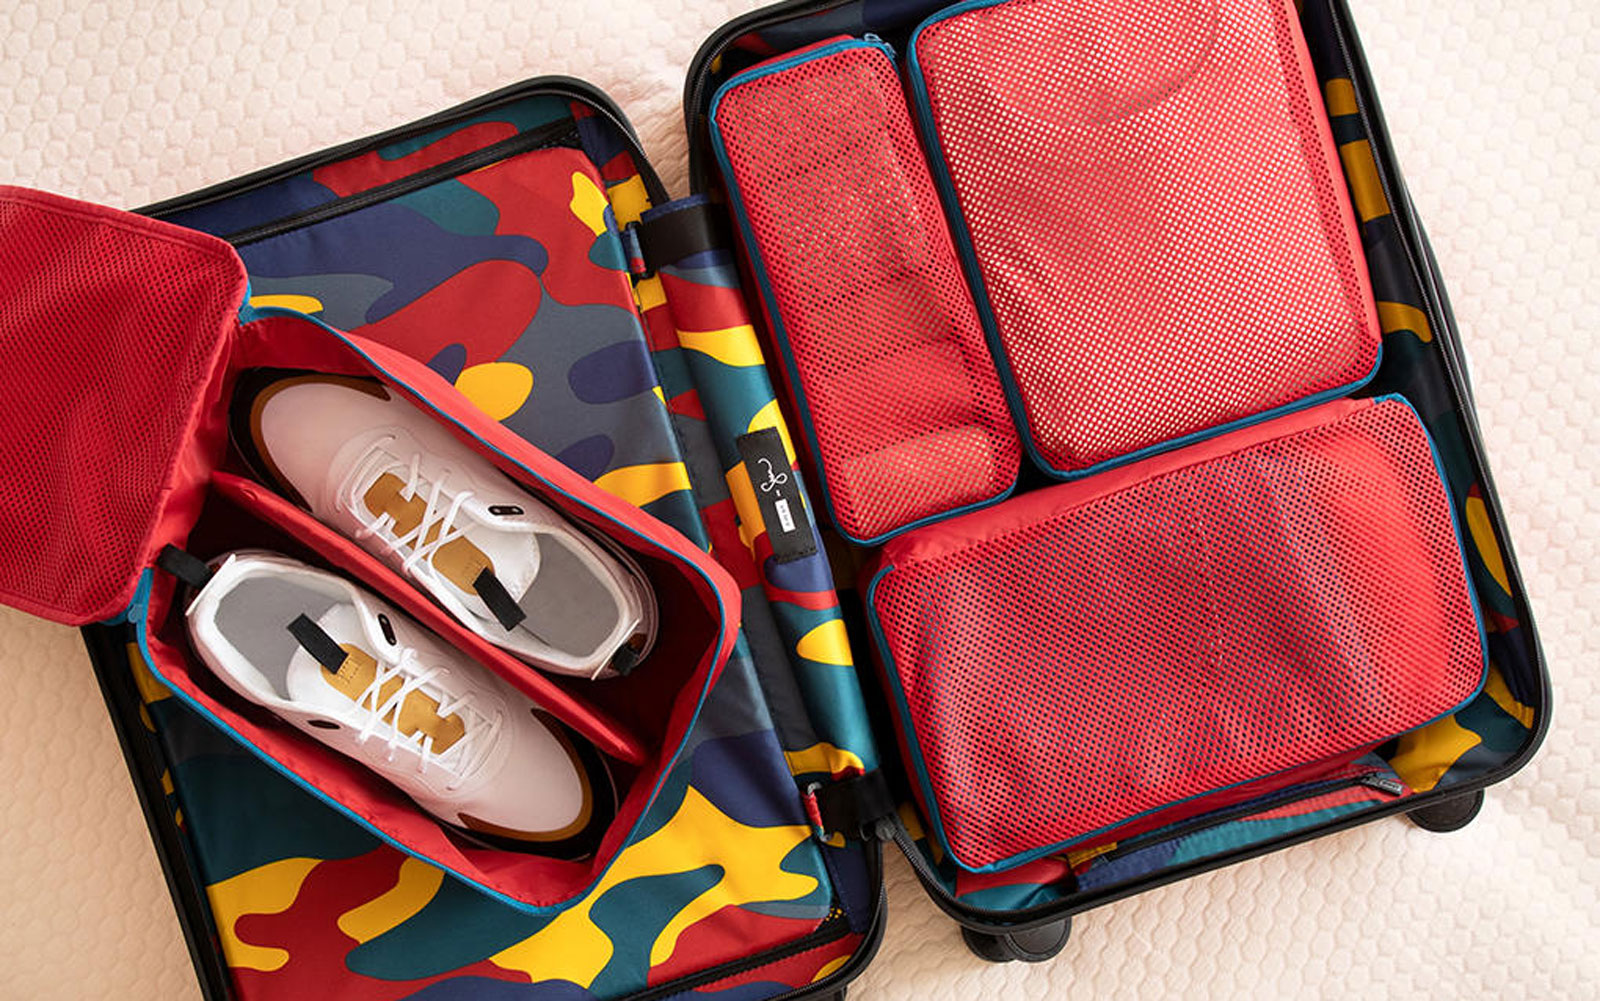 Interior of Away Suitcase with Packing and Shoe Cubes